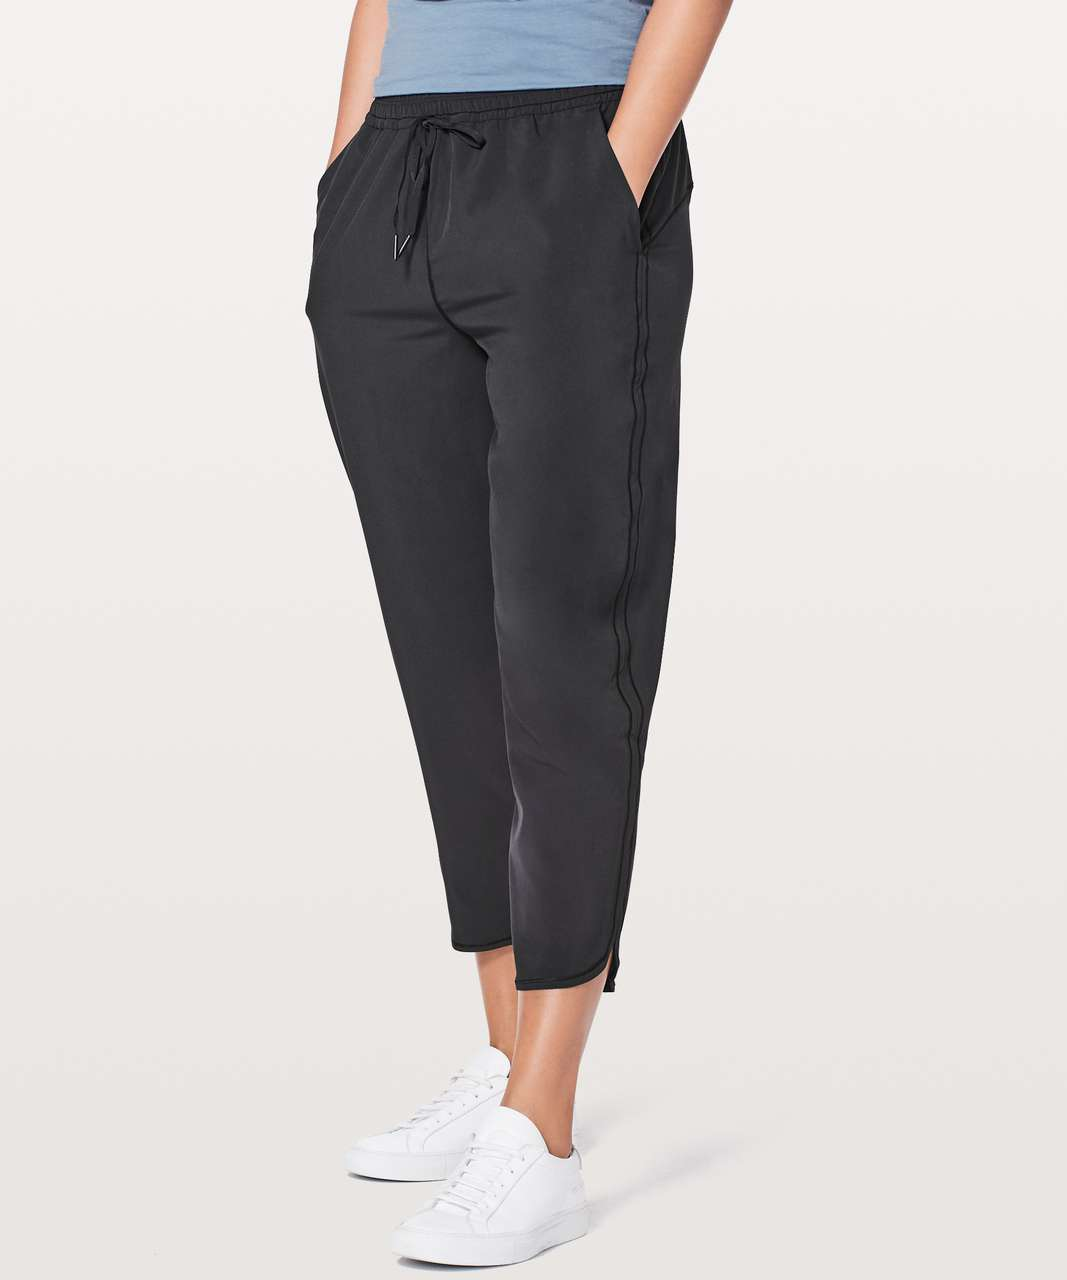 "Lululemon Keep It Classic Crop *23"" - Black"